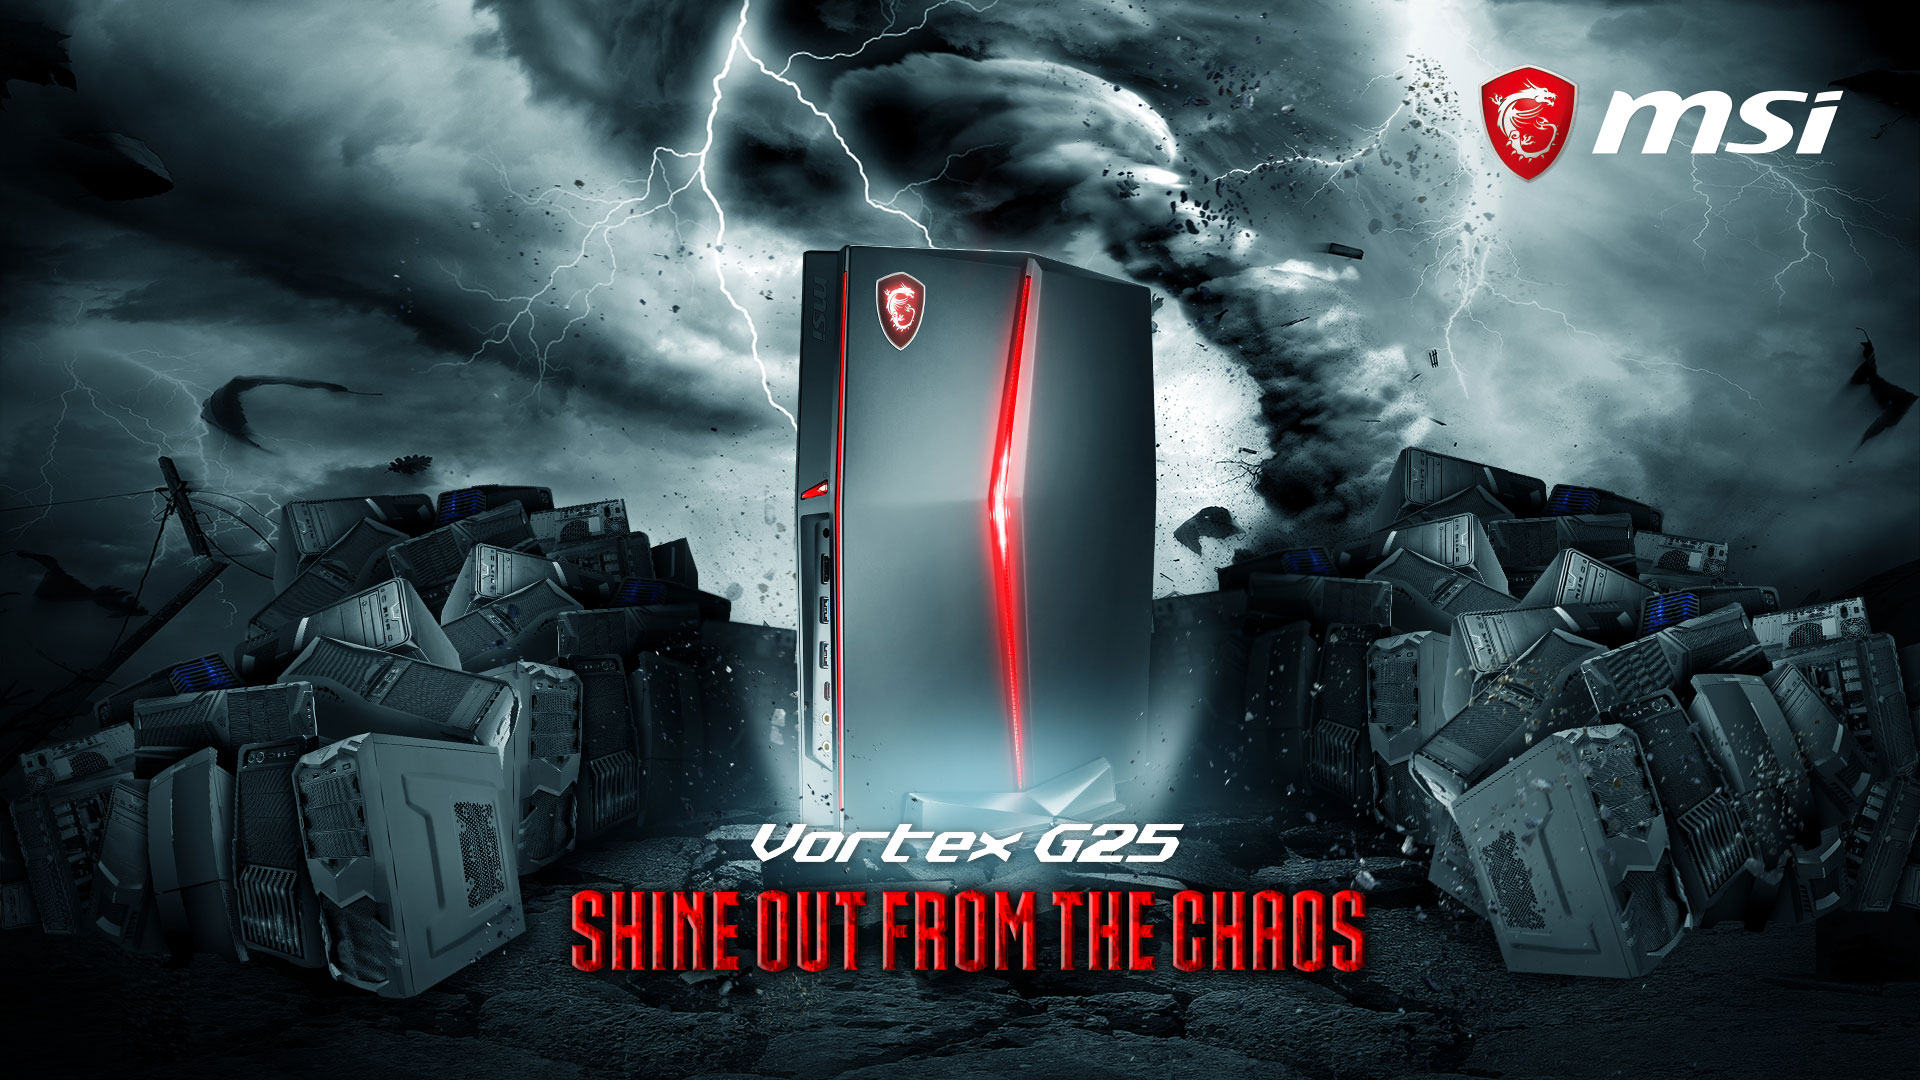 msi wallpaper size preview